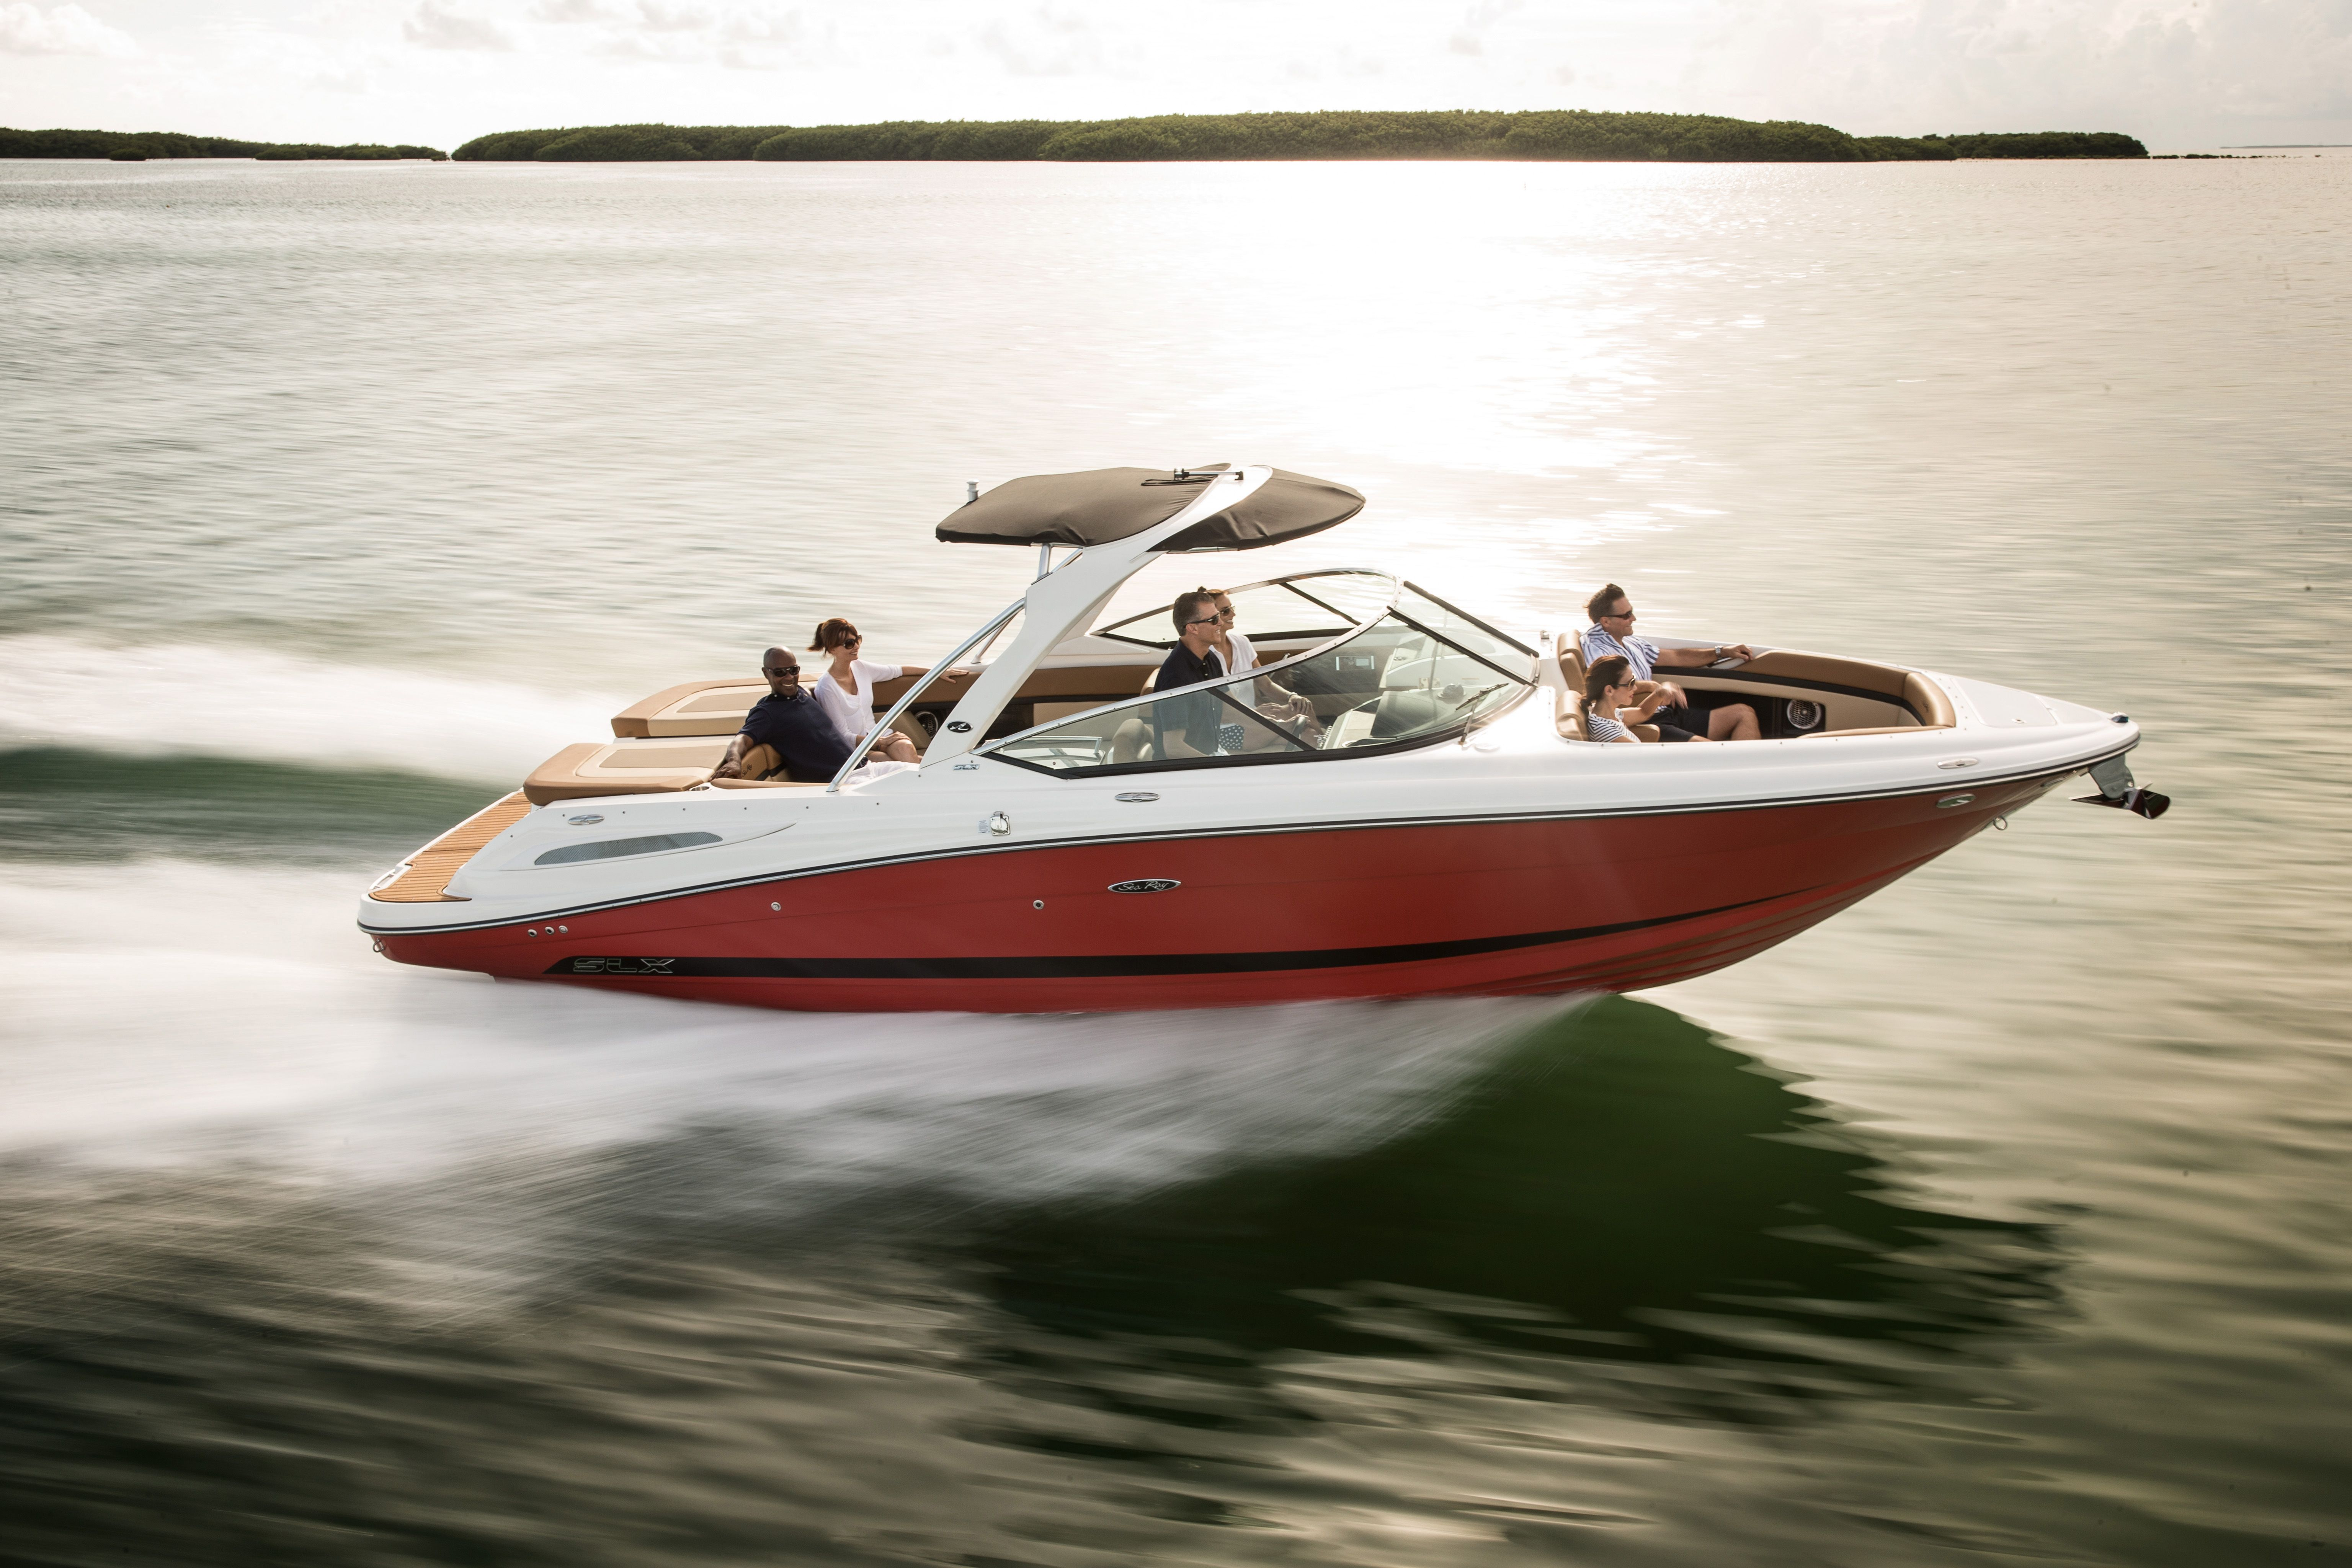 2014 Sea Ray® 270 SLX - Limited Lifetime Structural Warranty on hull and deck #searay #boats #dreamboat http://www.searayofsaskatchewan.com/product/270-slx